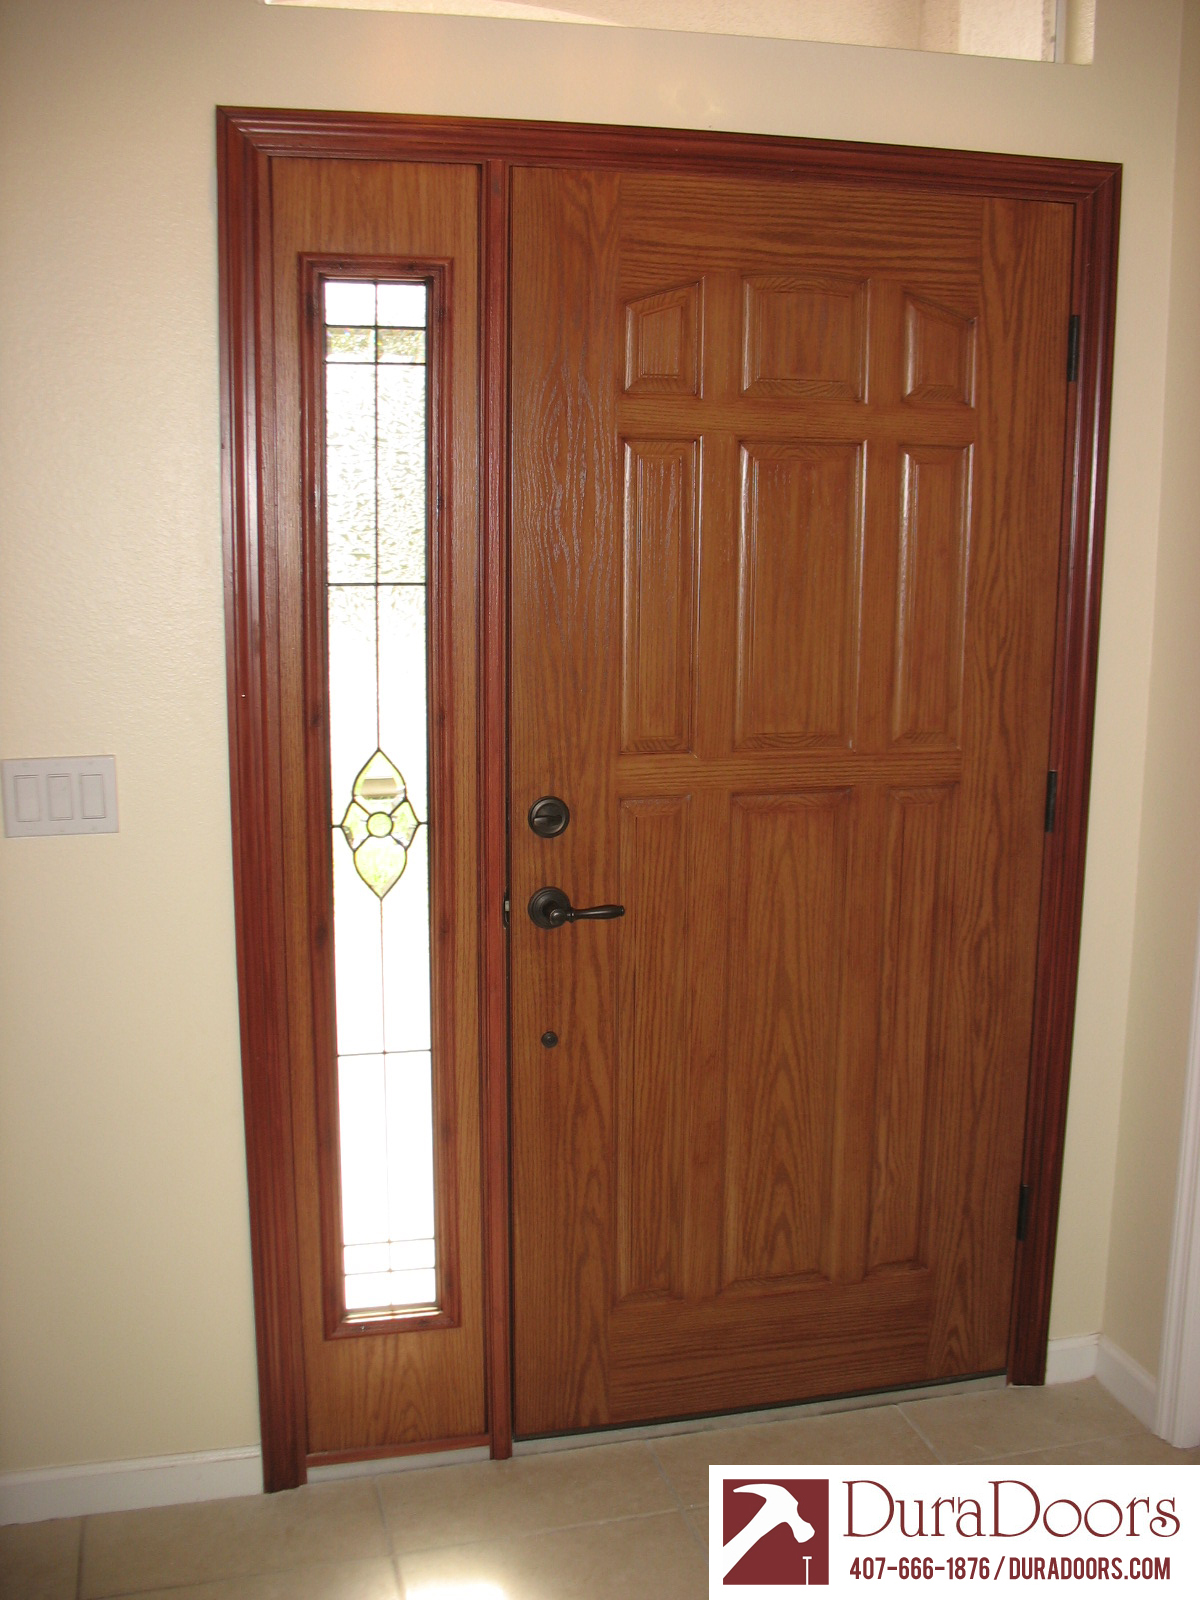 Plastpro Woodgrain Door And Sidelight With Odl Nouveau